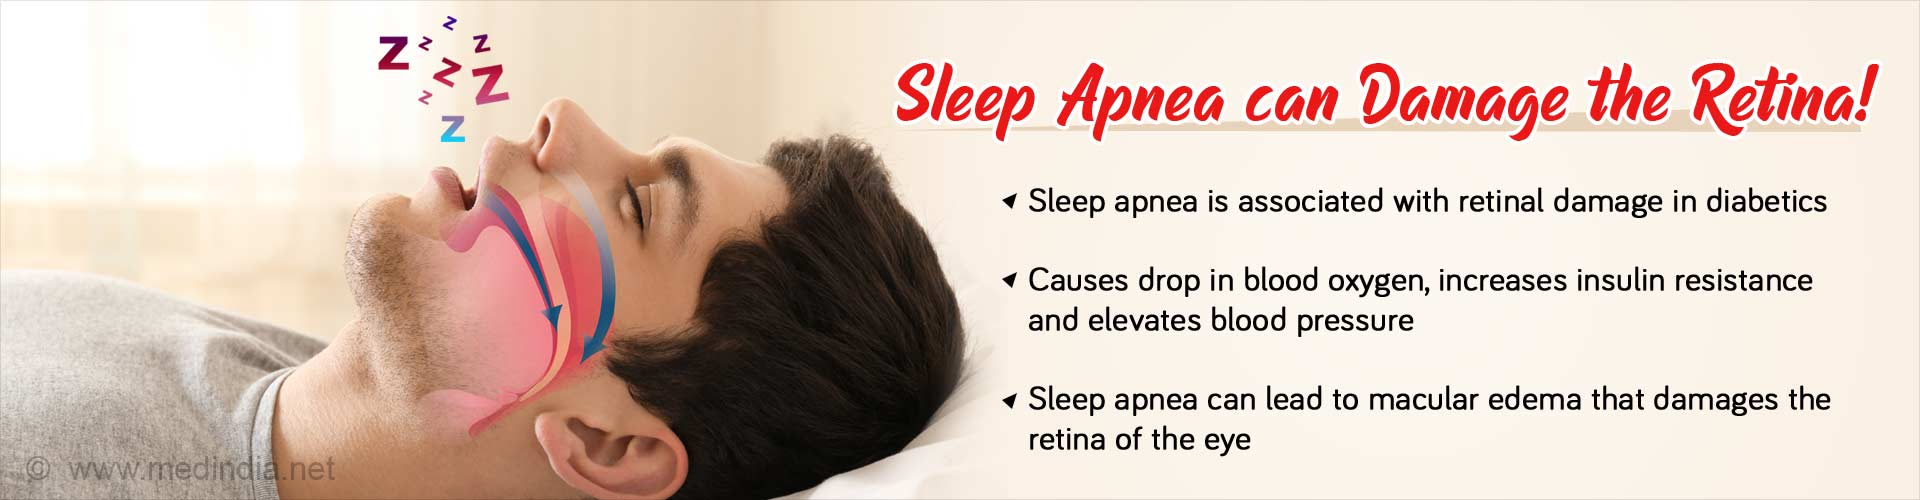 Sleep Apnea Linked to Diabetic Retinopathy